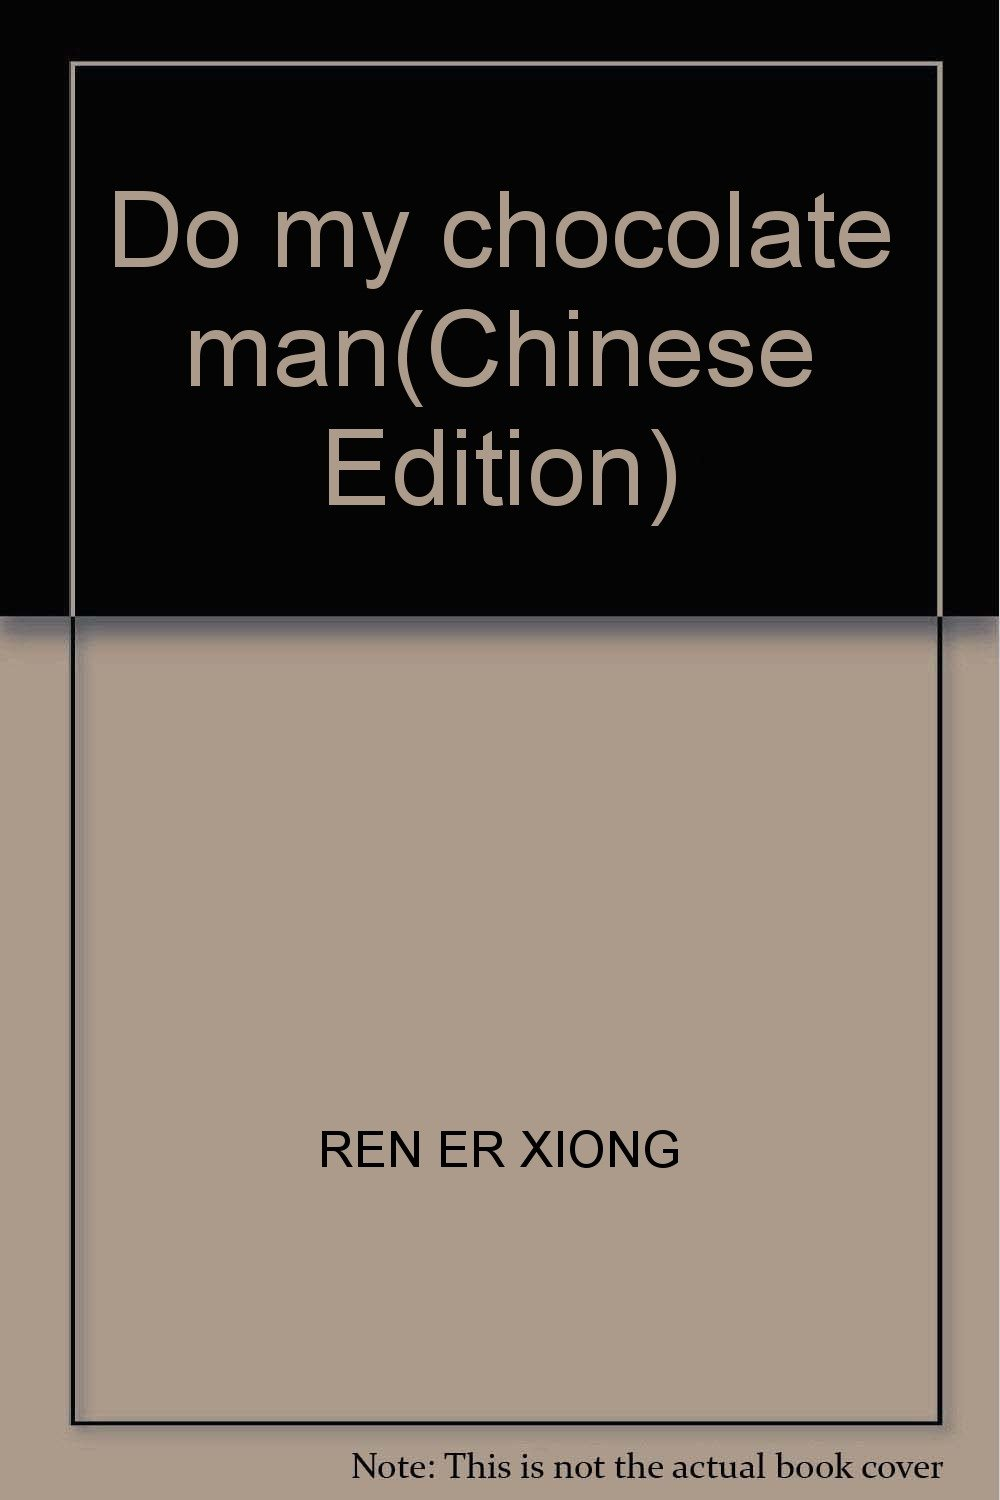 Do my chocolate man(Chinese Edition) pdf